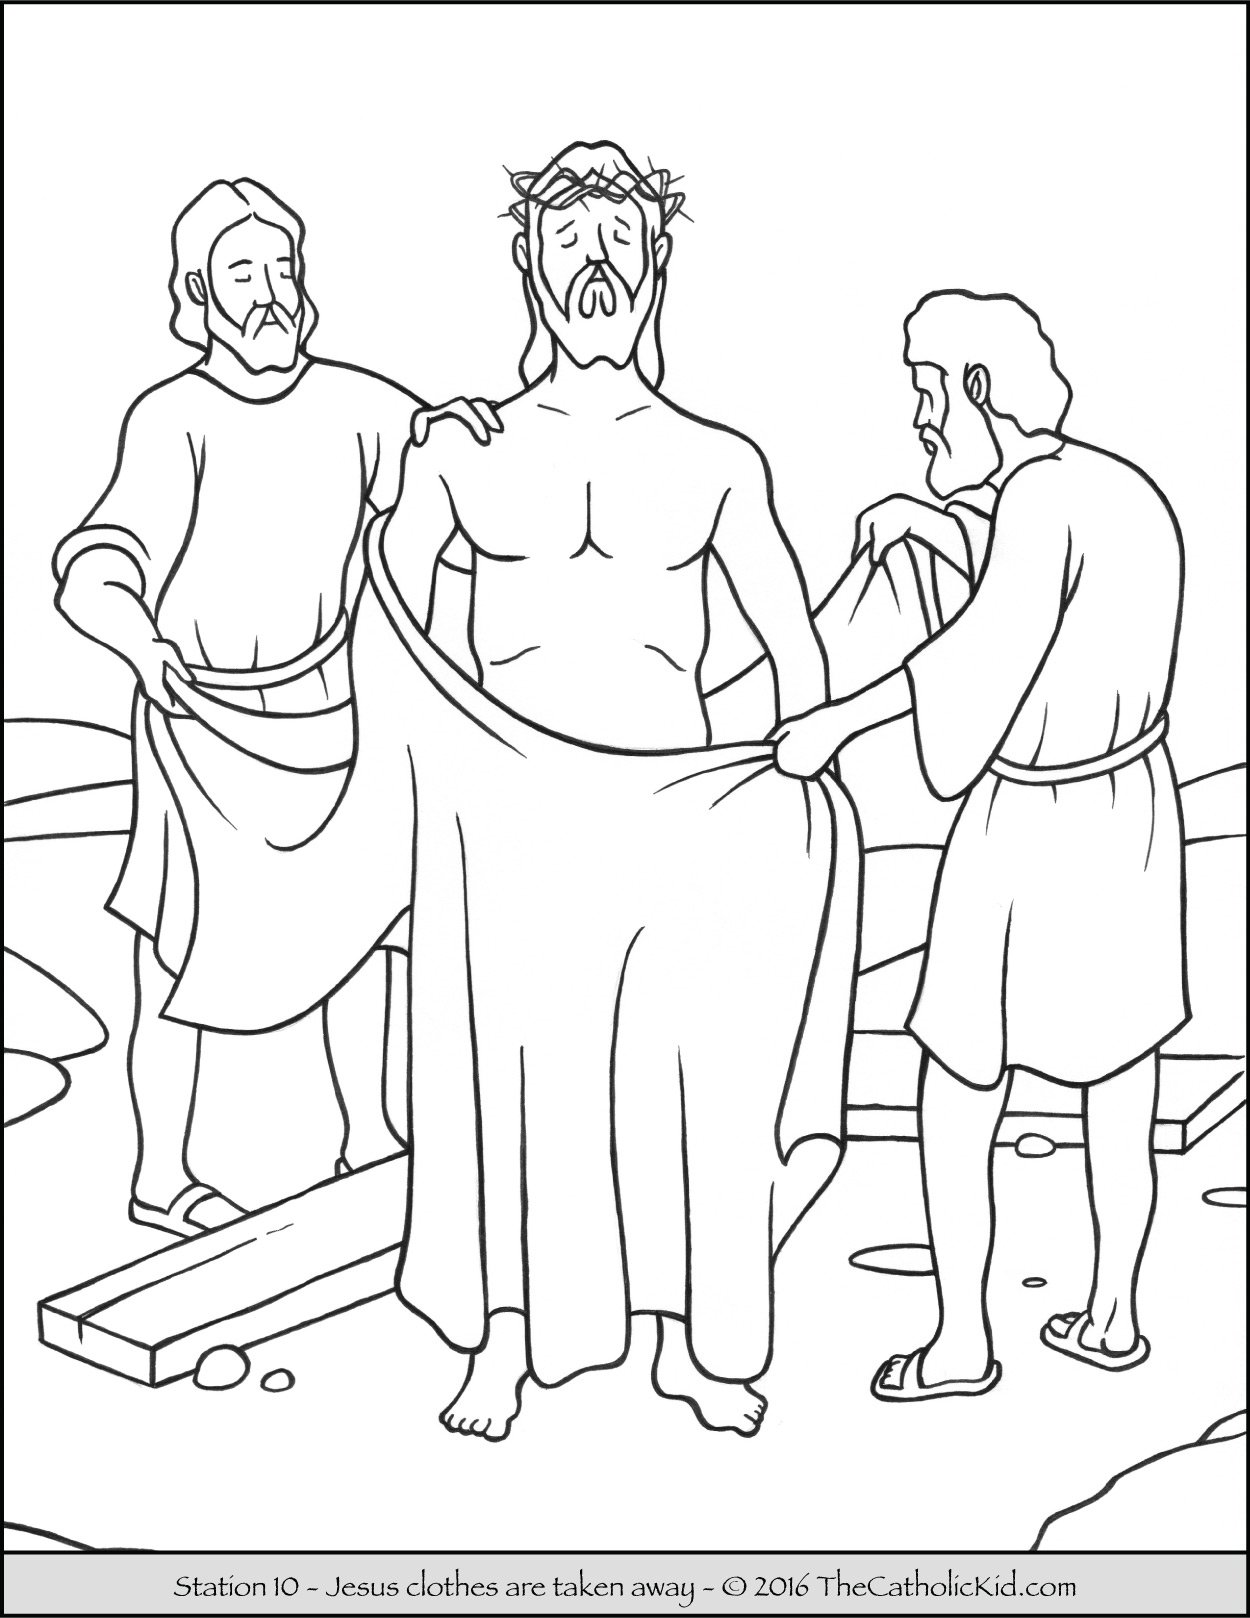 Stations of the Cross Coloring Pages 10 - Jesus clothes are taken ...